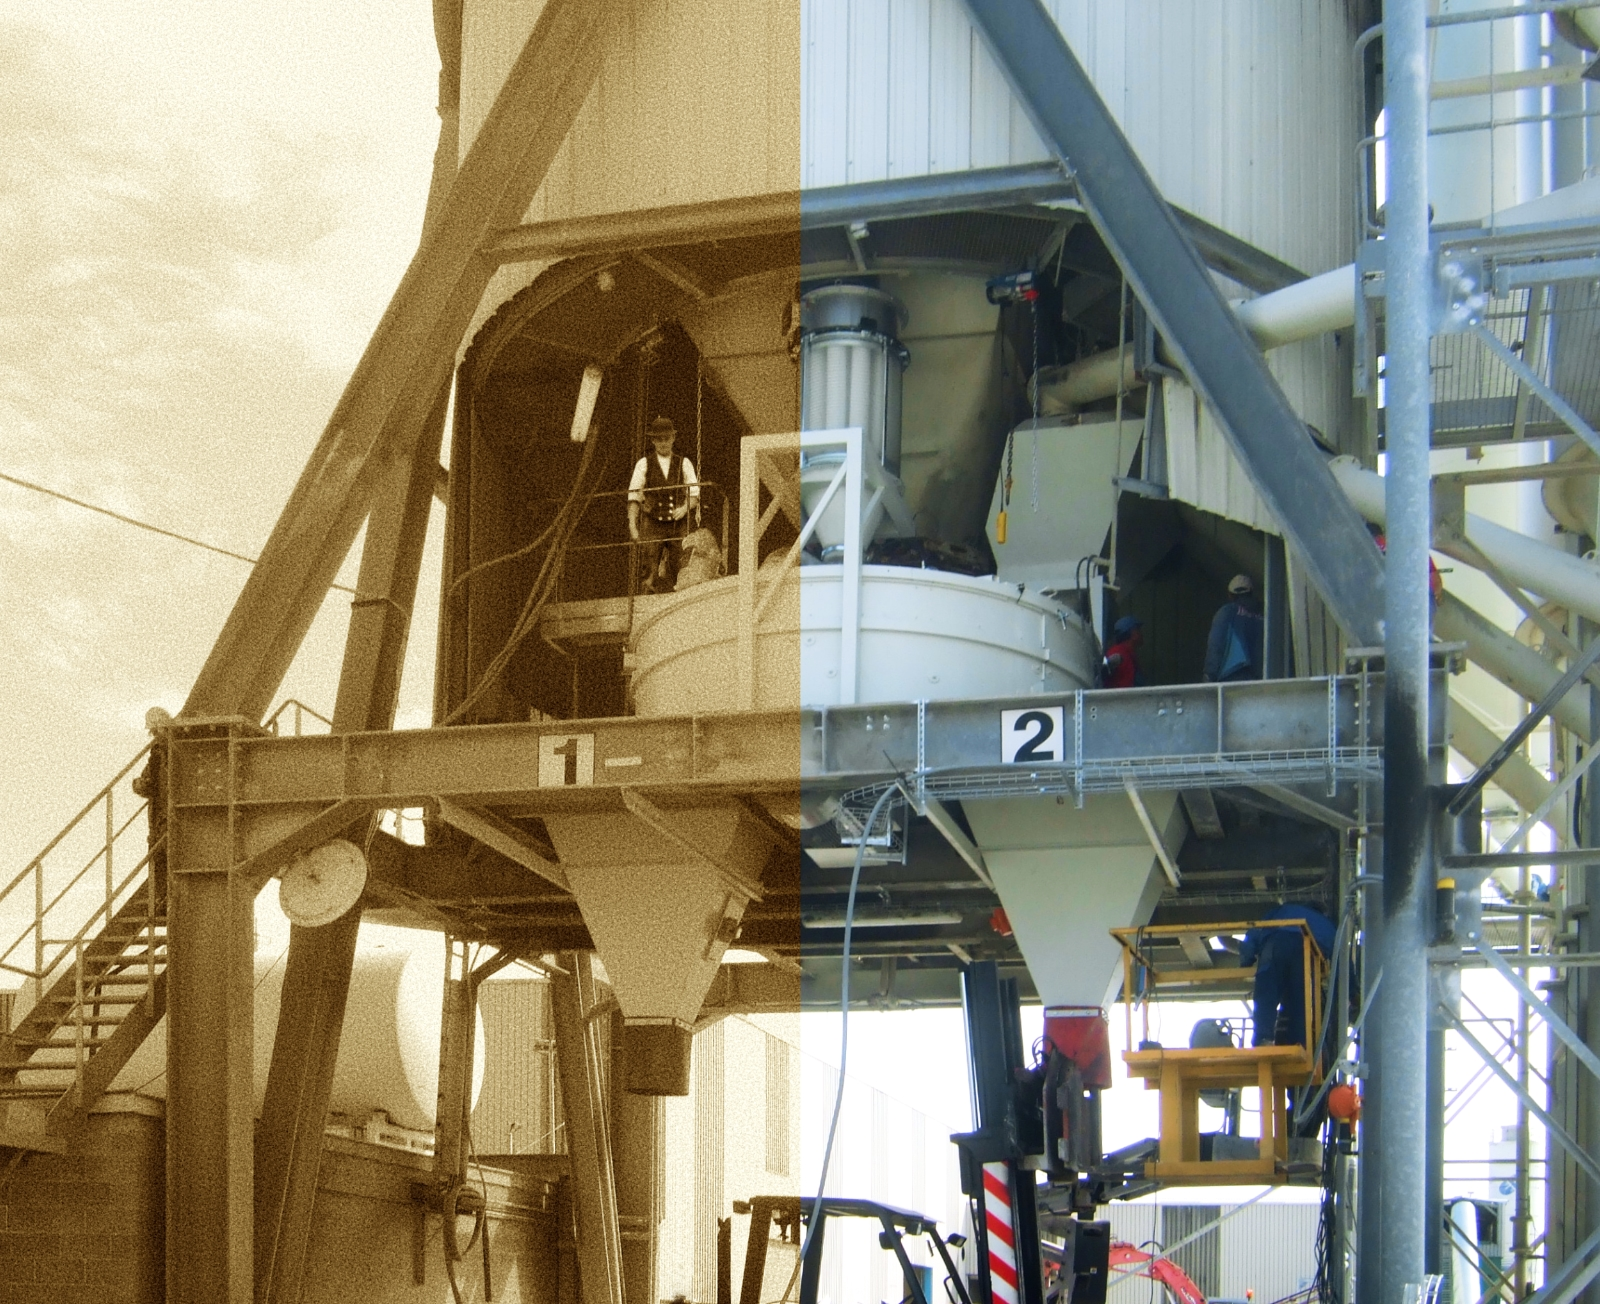 Cylindrical concrete mixer with two discharge funnels underneath on a steel frame, left side black and white and right side colored.